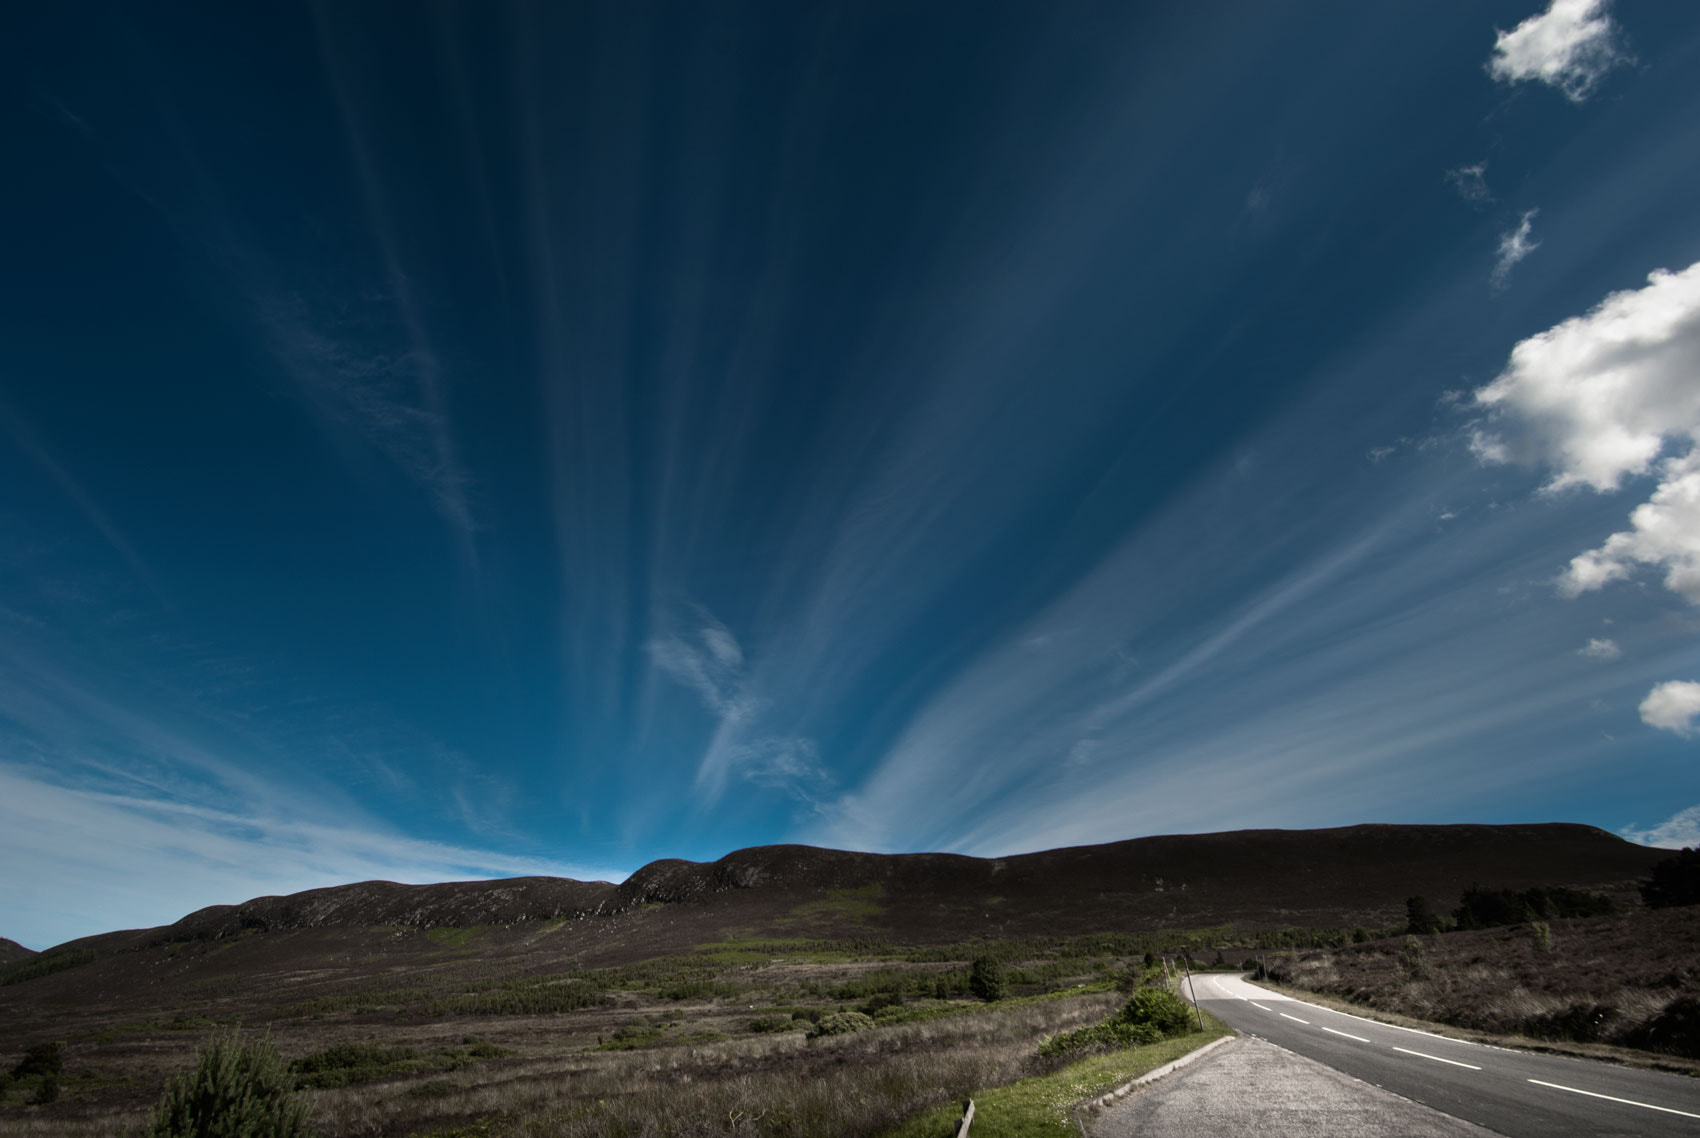 Photograph Sky Lines by Gareth Dennison on 500px